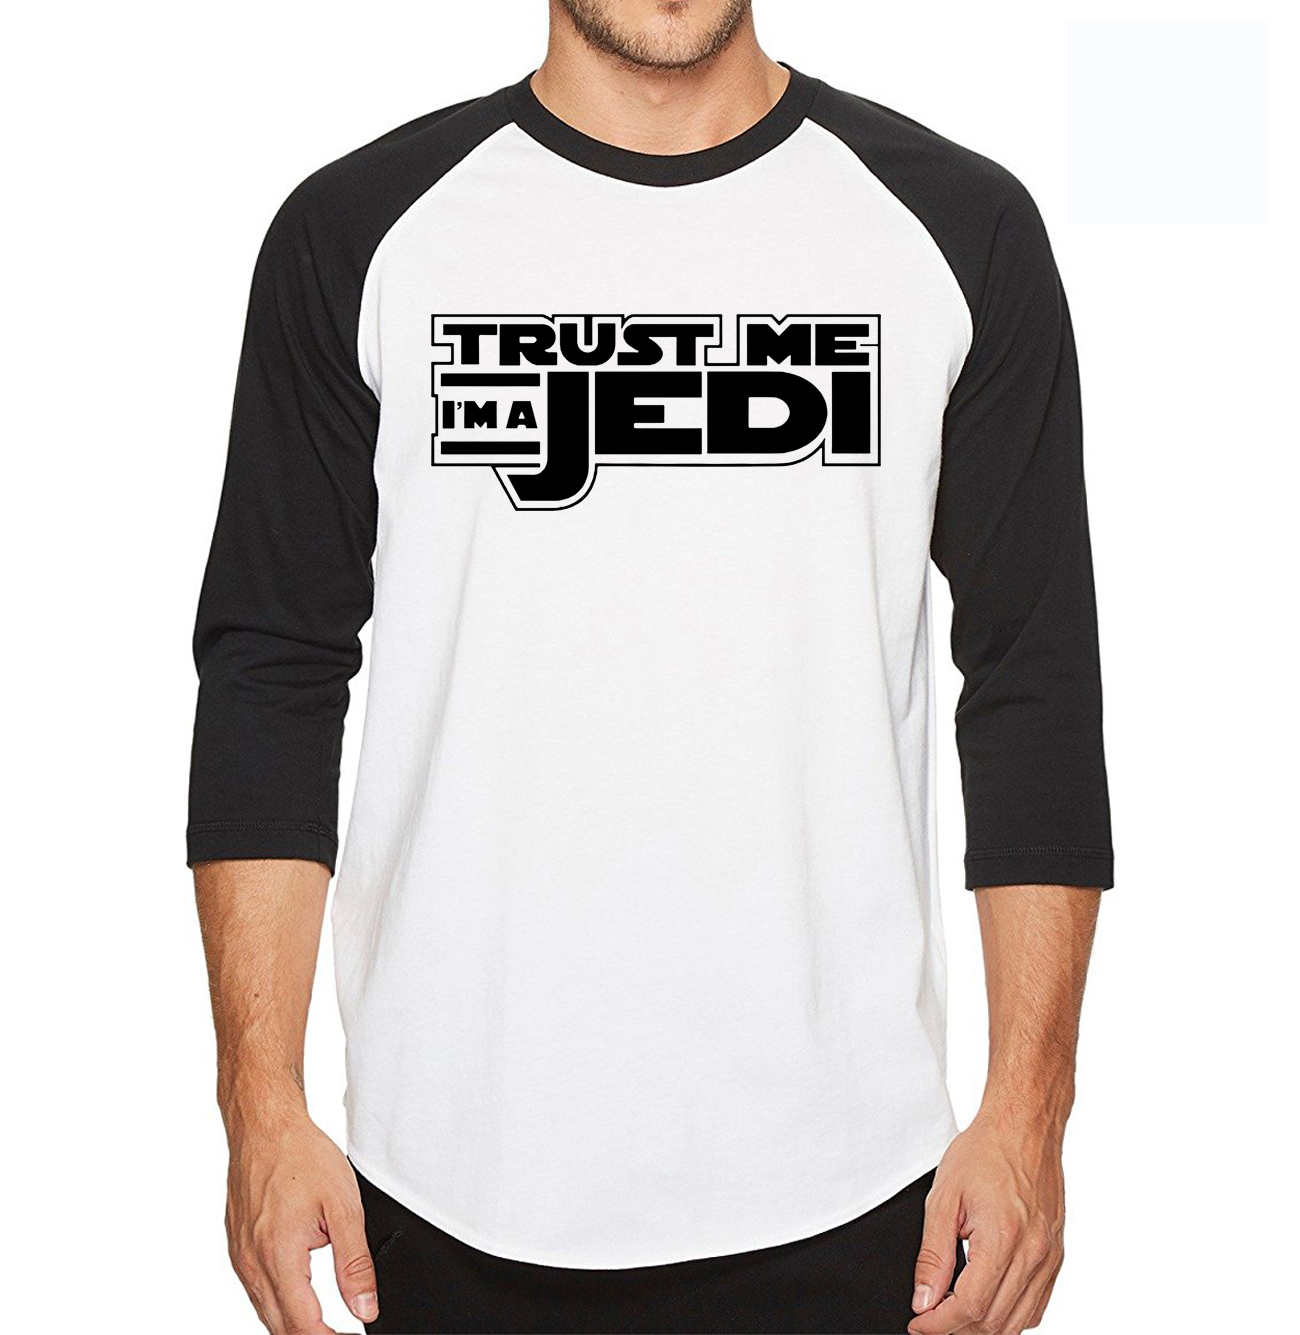 Three Quarter Sleeve T Shirt Men 100% Cotton High Quality STAR WARS Trust Me I'm a Jedi knight Fashion Design T-Shirt